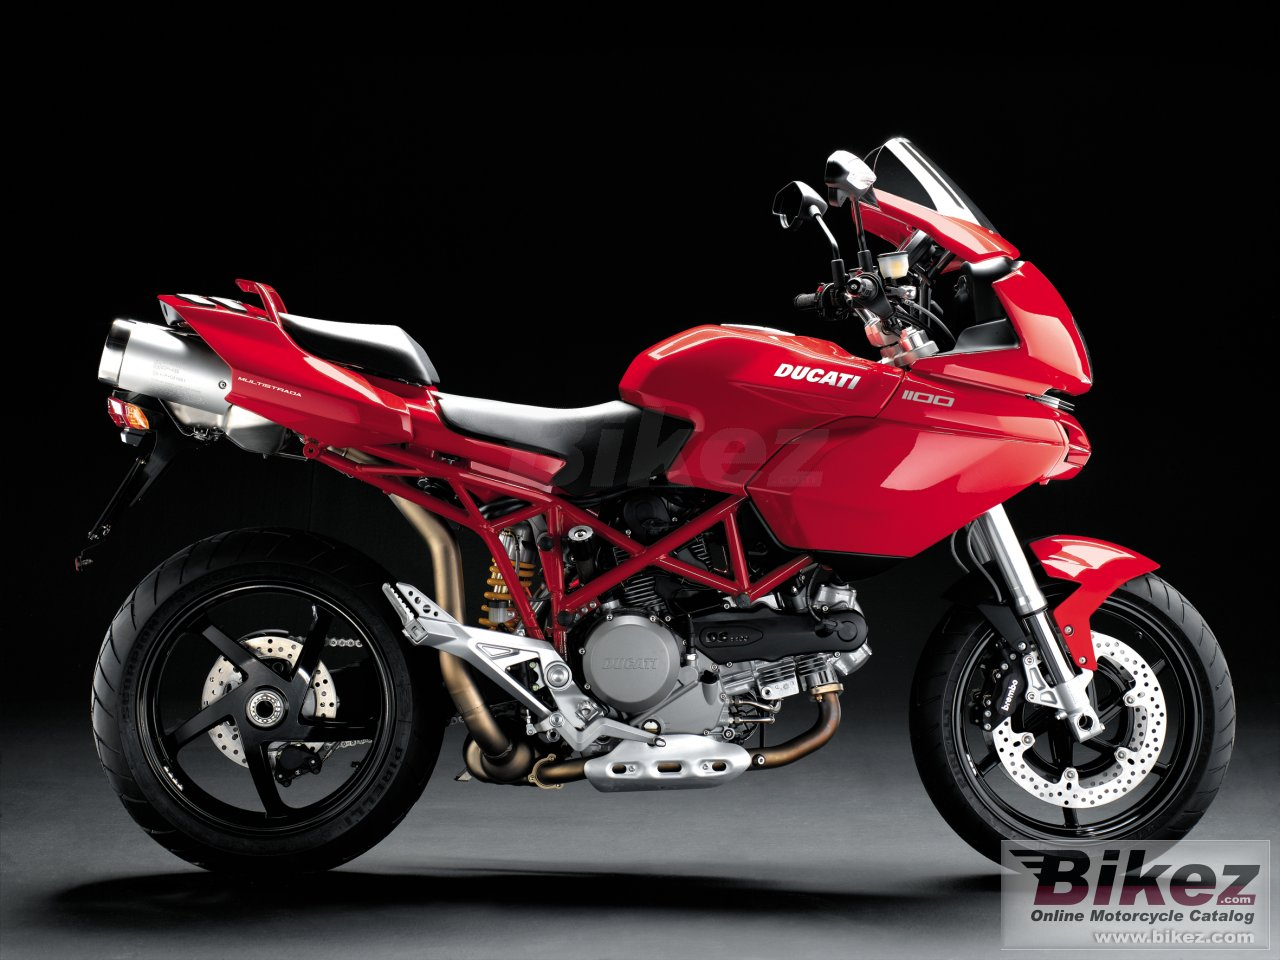 Big Ducati multistrada 1100 picture and wallpaper from Bikez.com